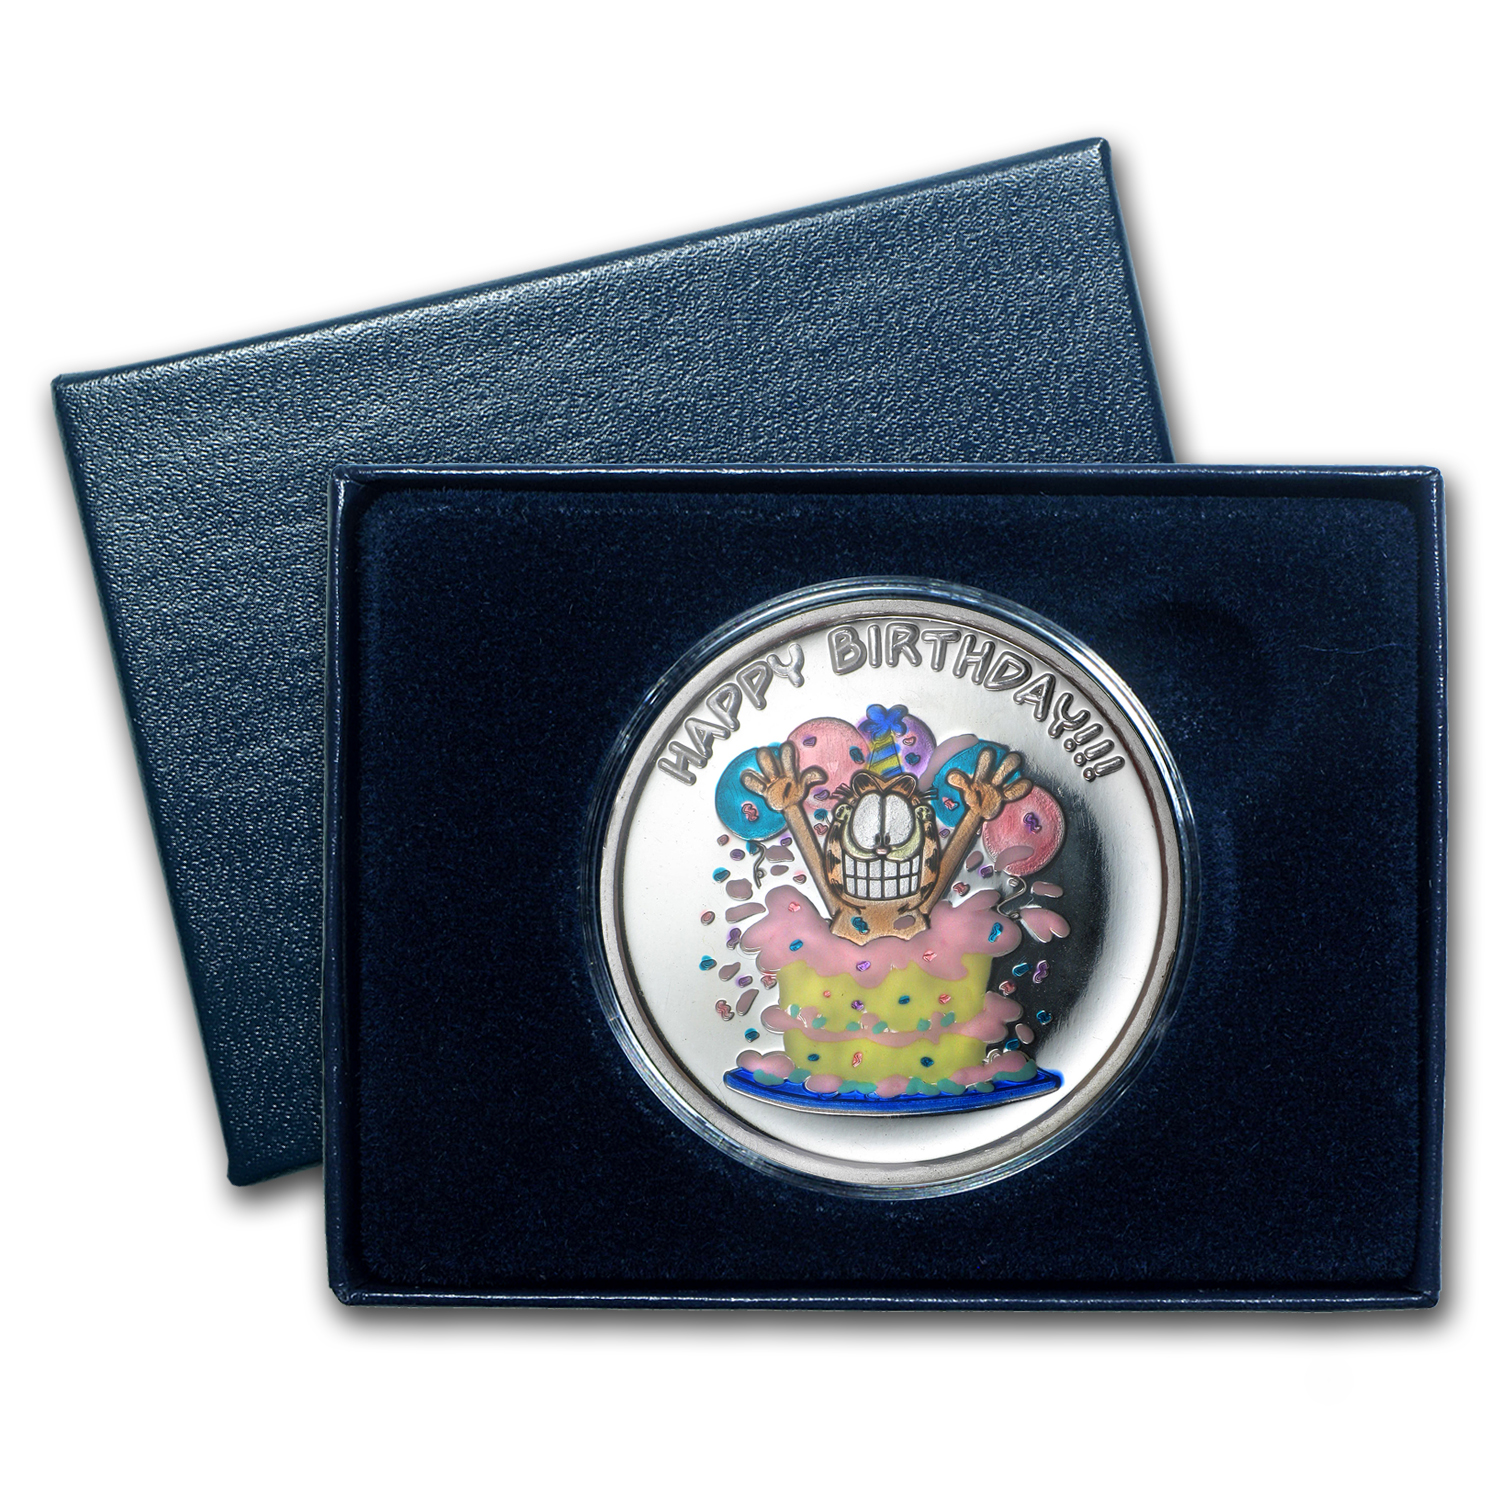 1 oz Silver Rnd - Happy Birthday Garfield (Enameled, w/Box & Cap)